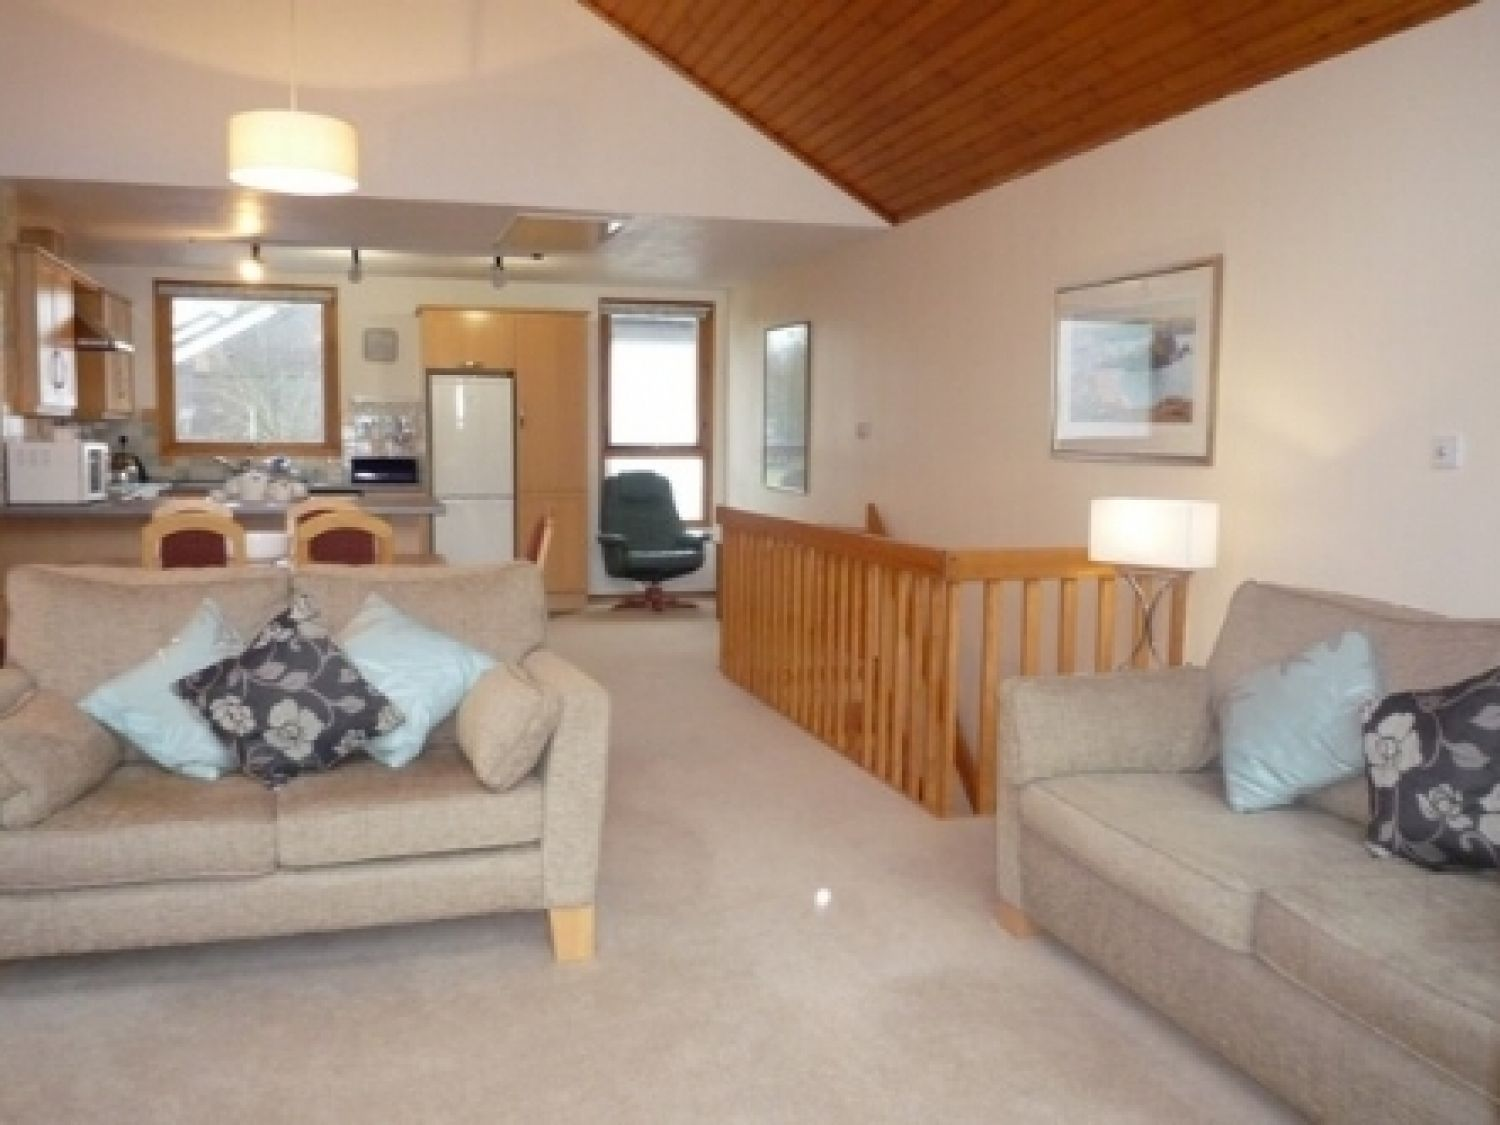 22 Keswick Bridge - Lake District - 973199 - photo 1